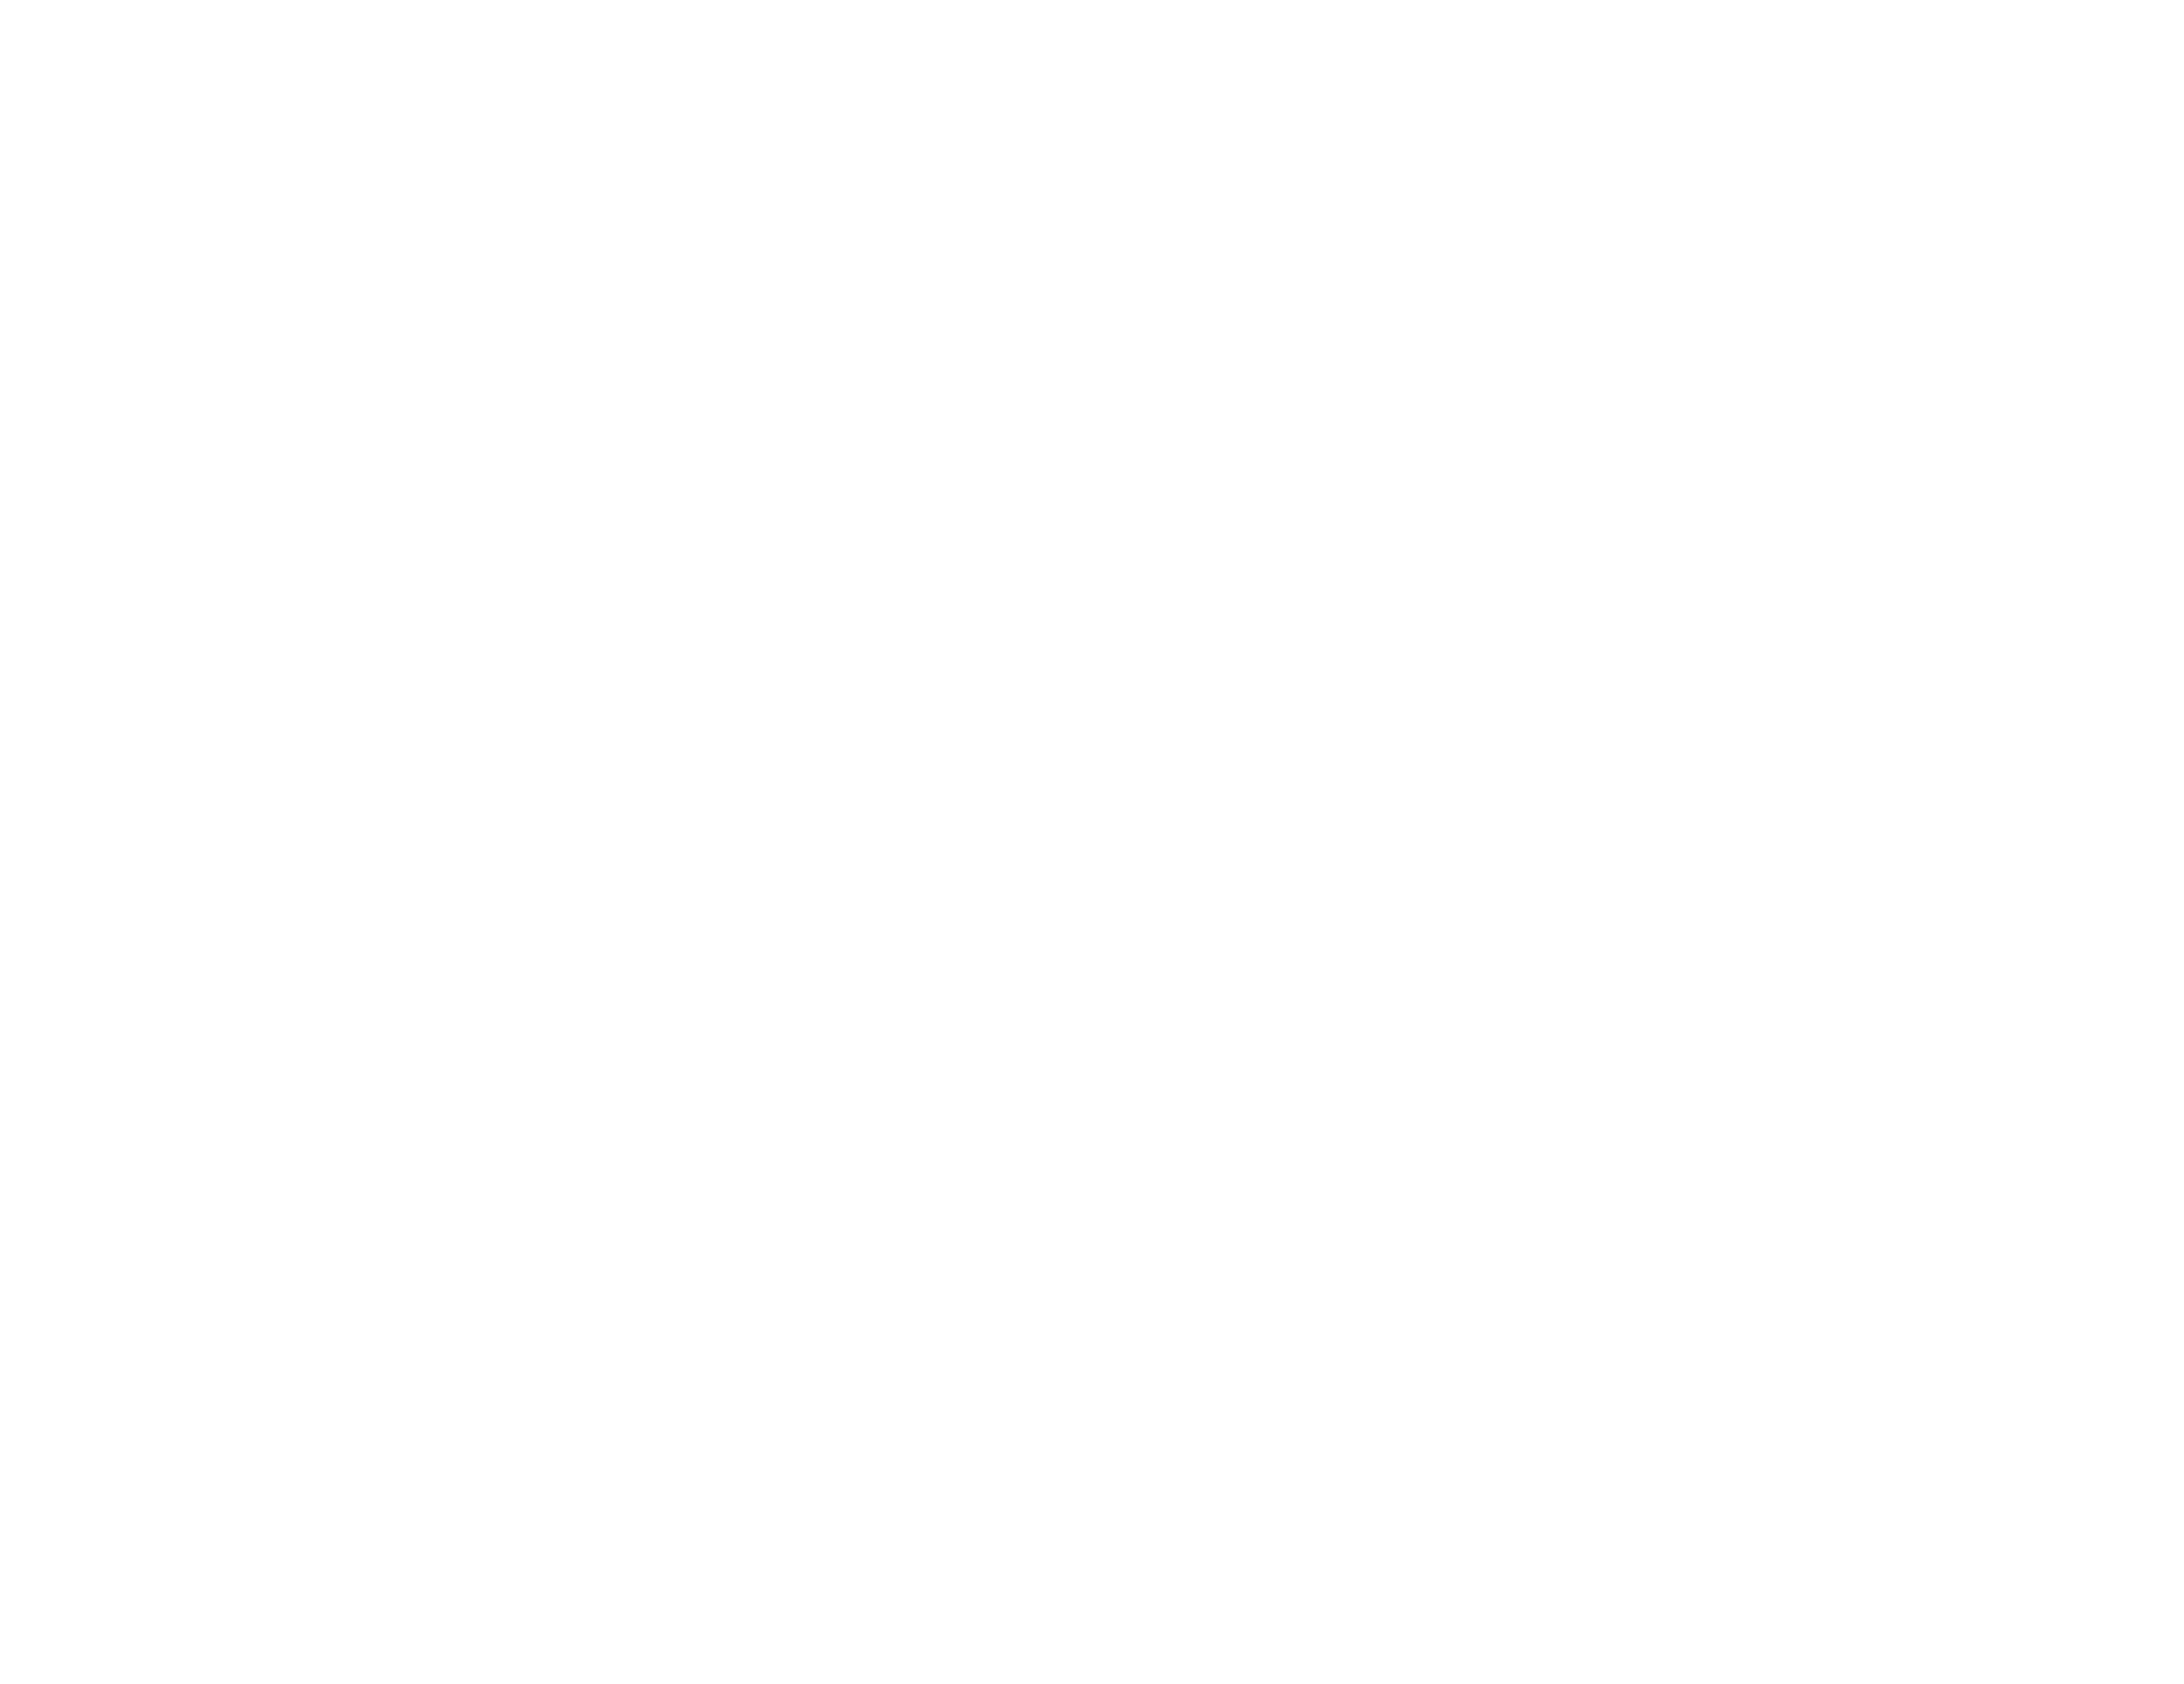 Kinnetik Solutions AS